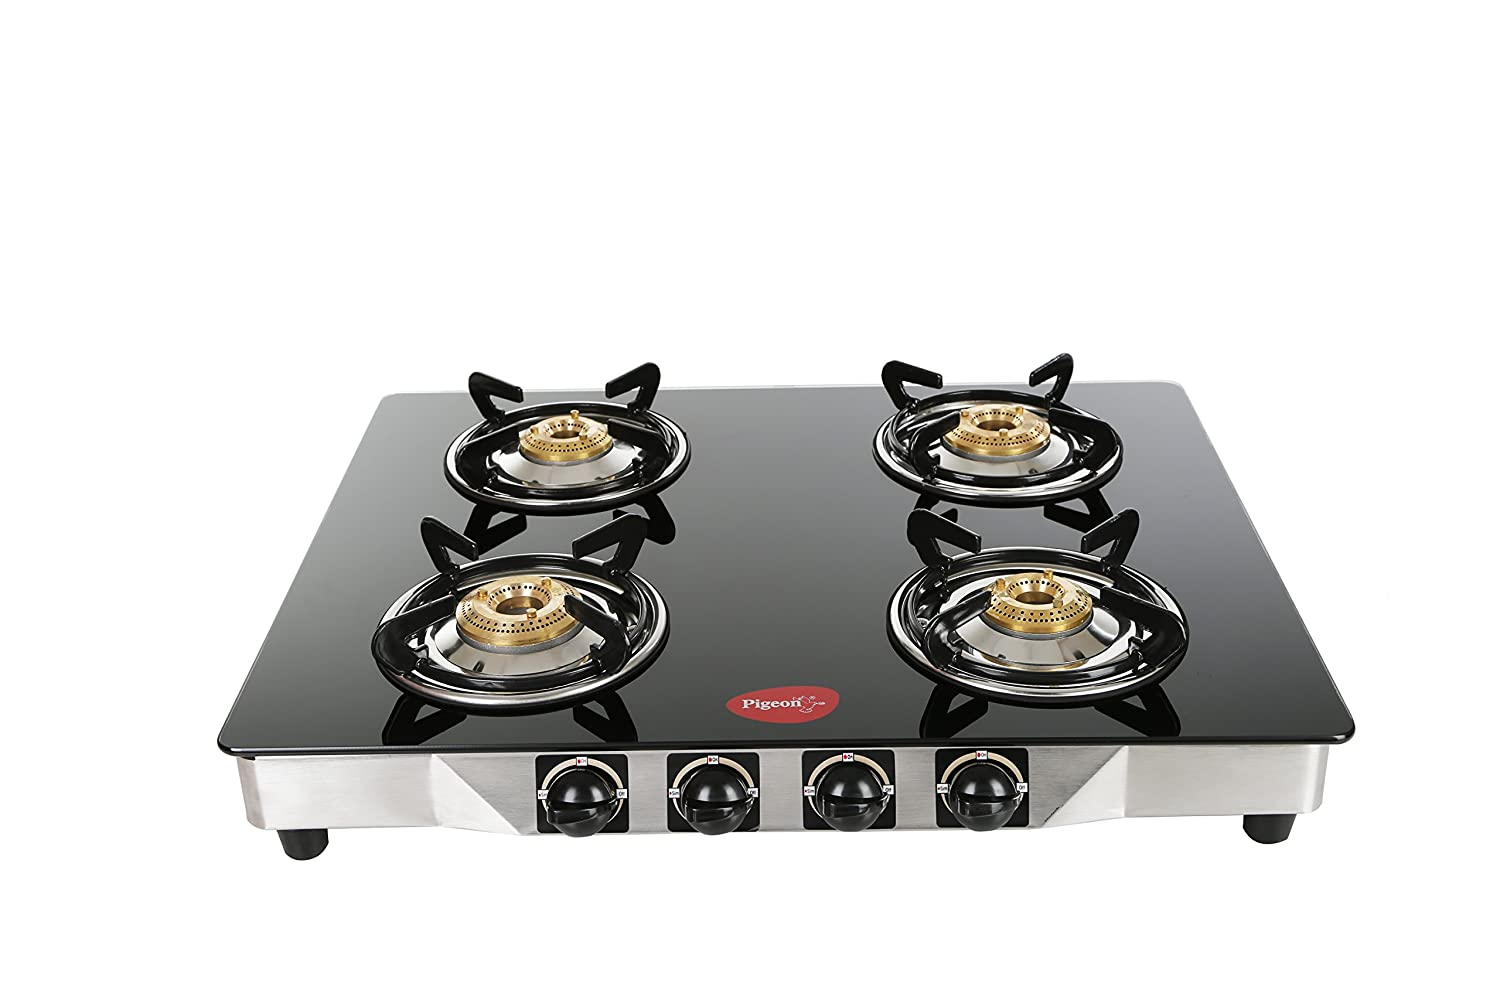 Pigeon by Stovekraft Blaze Blackline Glass 4 Burner Gas Cooktop